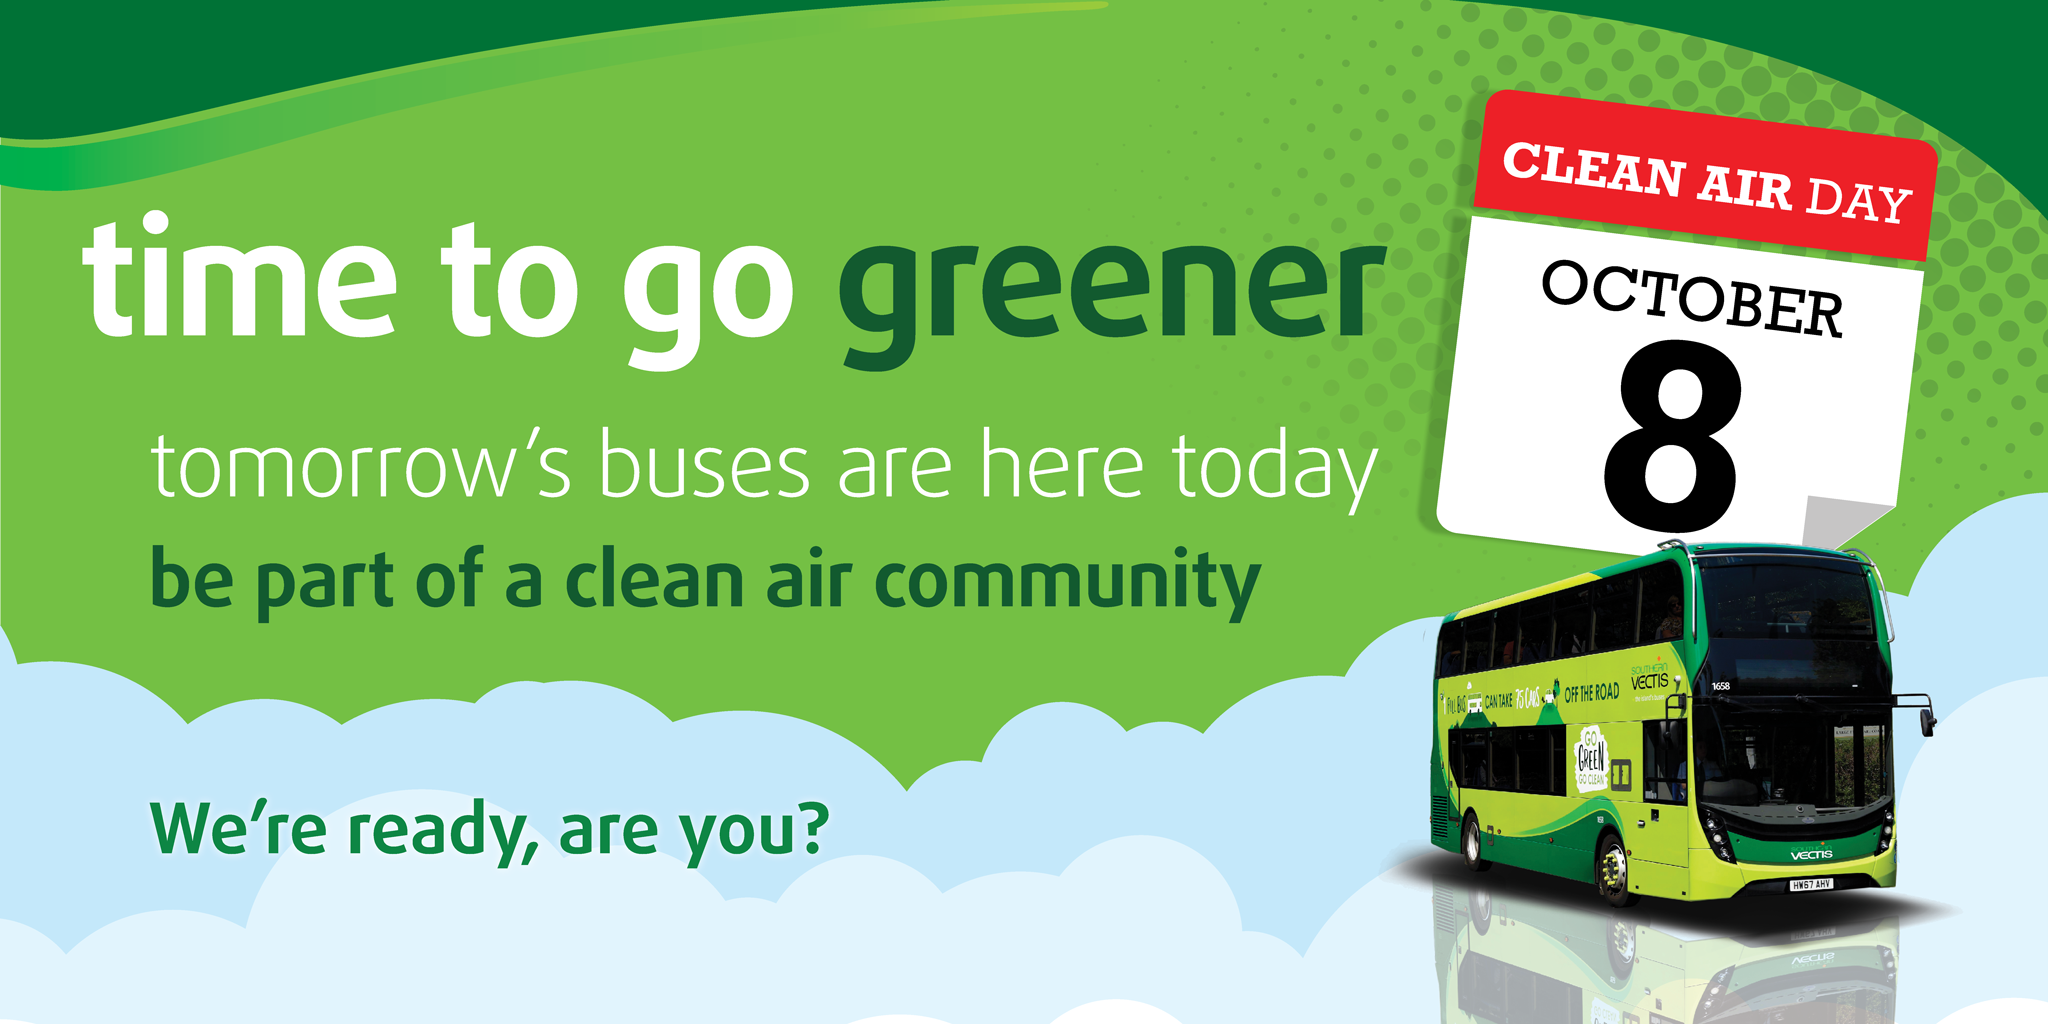 illustration of bus and text time to go greener and calendar showing October 8th